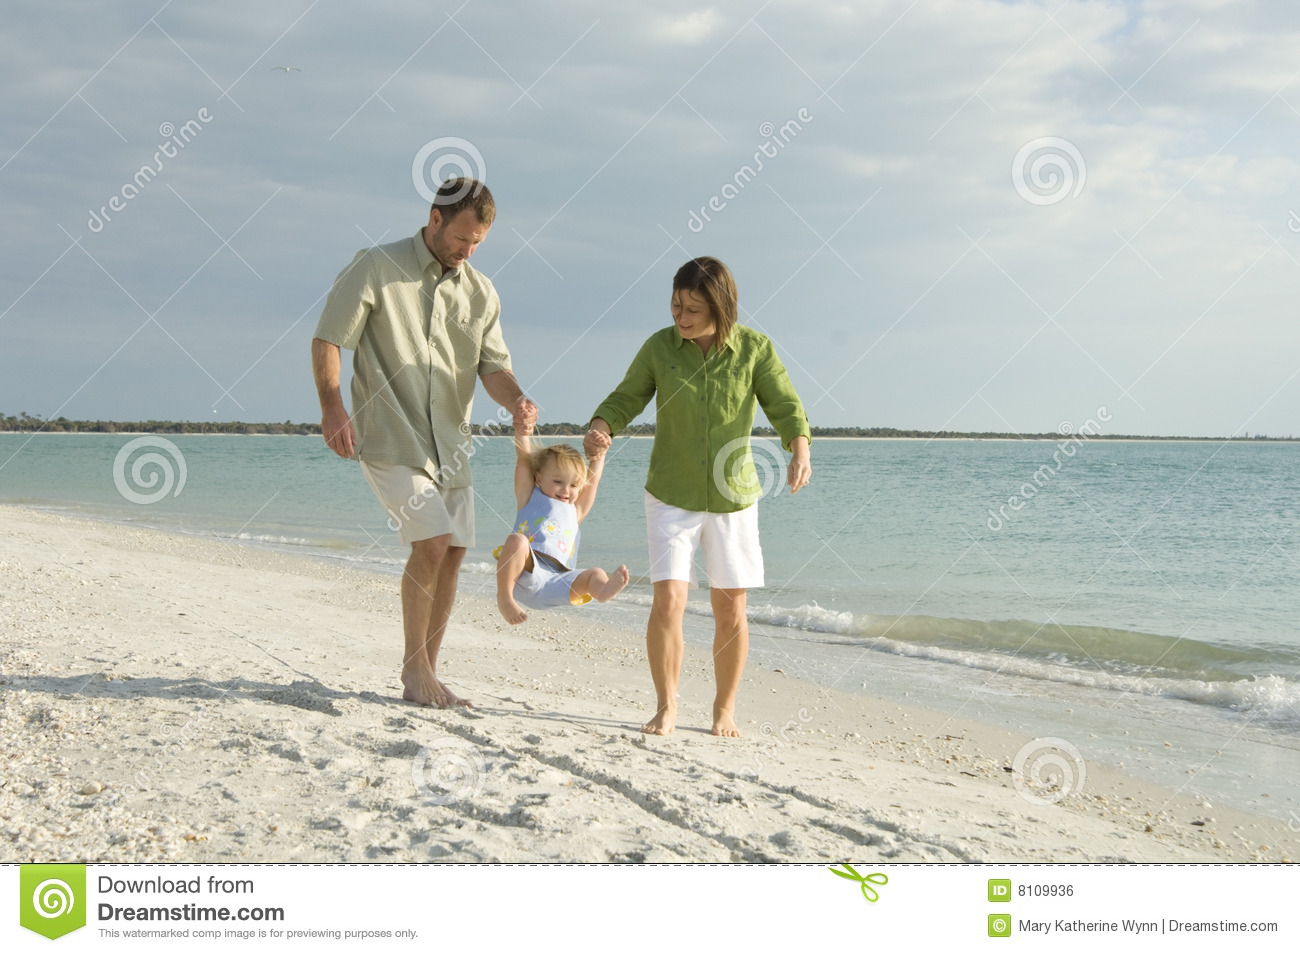 Family at beach